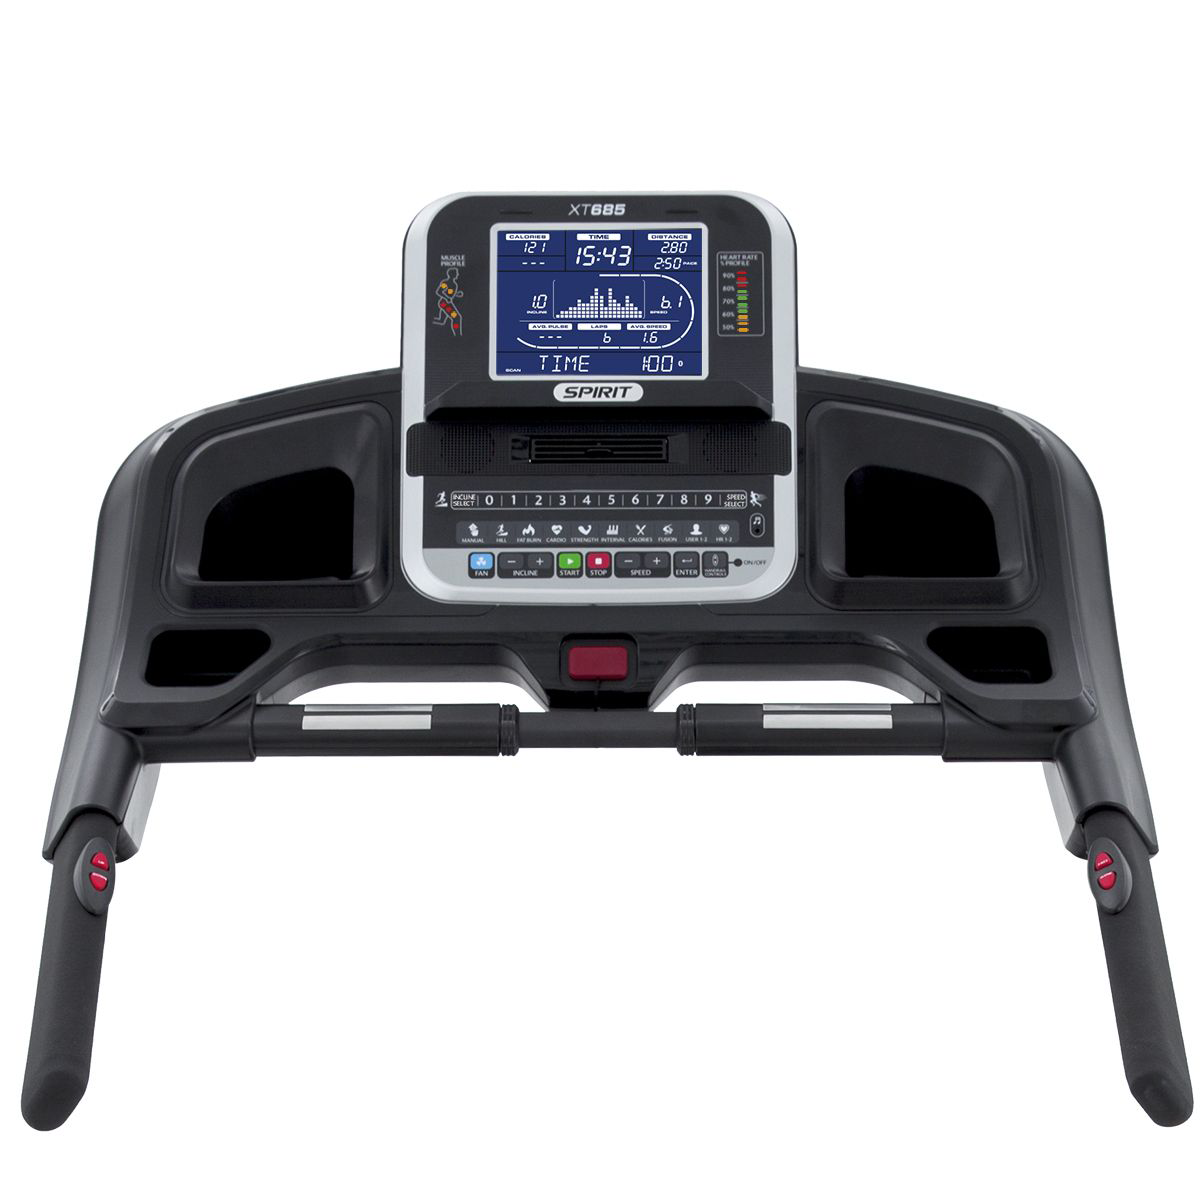 Spirit Fitness XT685 treadmill console showing monitor, cupholders, hand pulse grips, handlebars, and quick controls